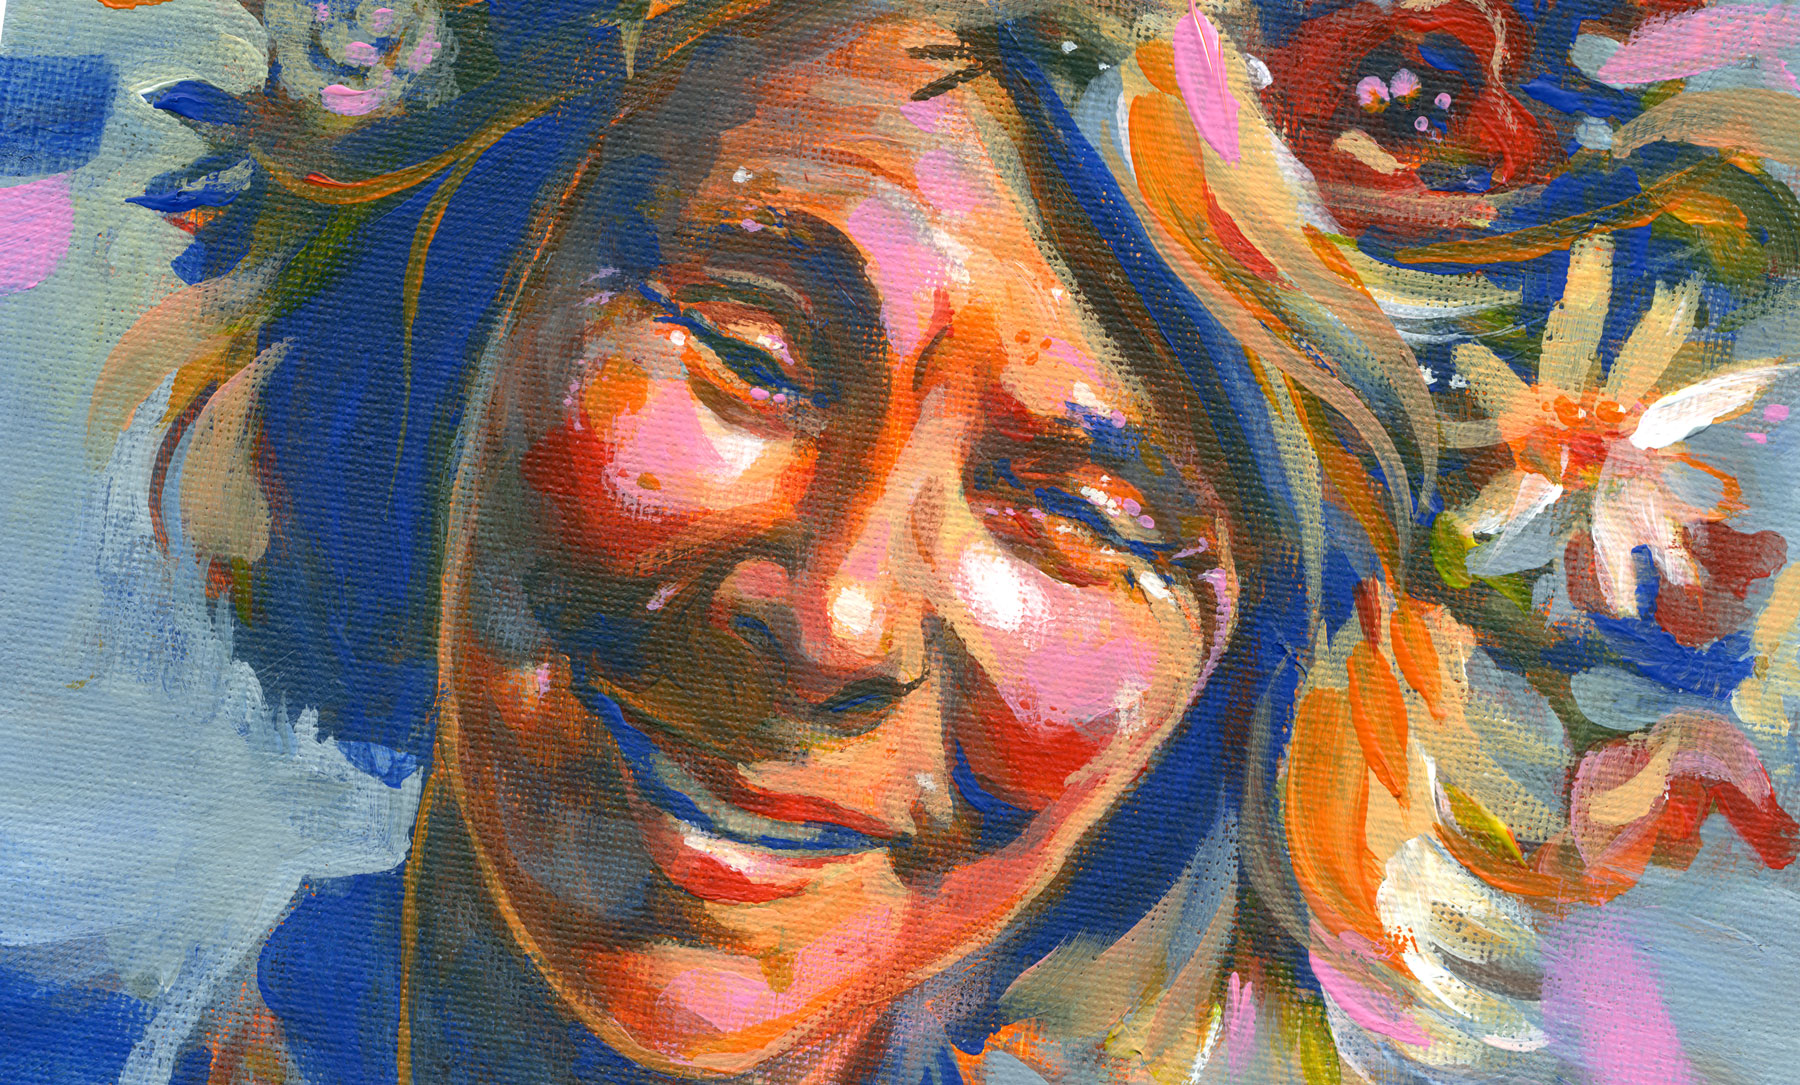 Elli Maanpää: Laughing Tove, Acrylic on canvas, 21 x 30 cm, 2020